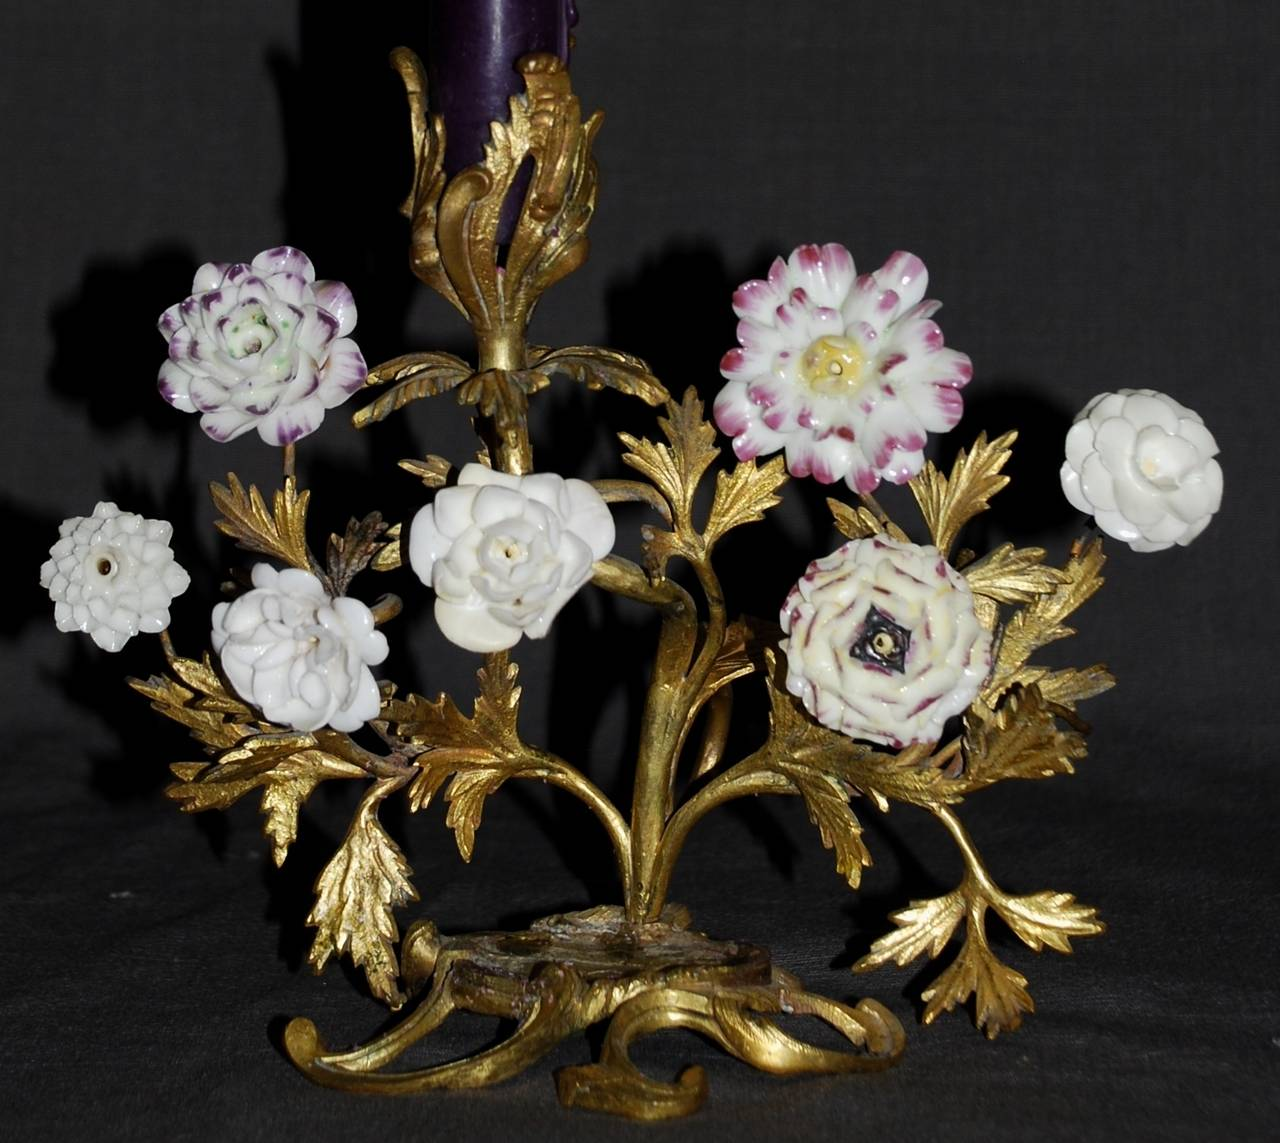 18th Century Pair of Louis XV Ormolu Candlesticks with Porcelain Flowers For Sale